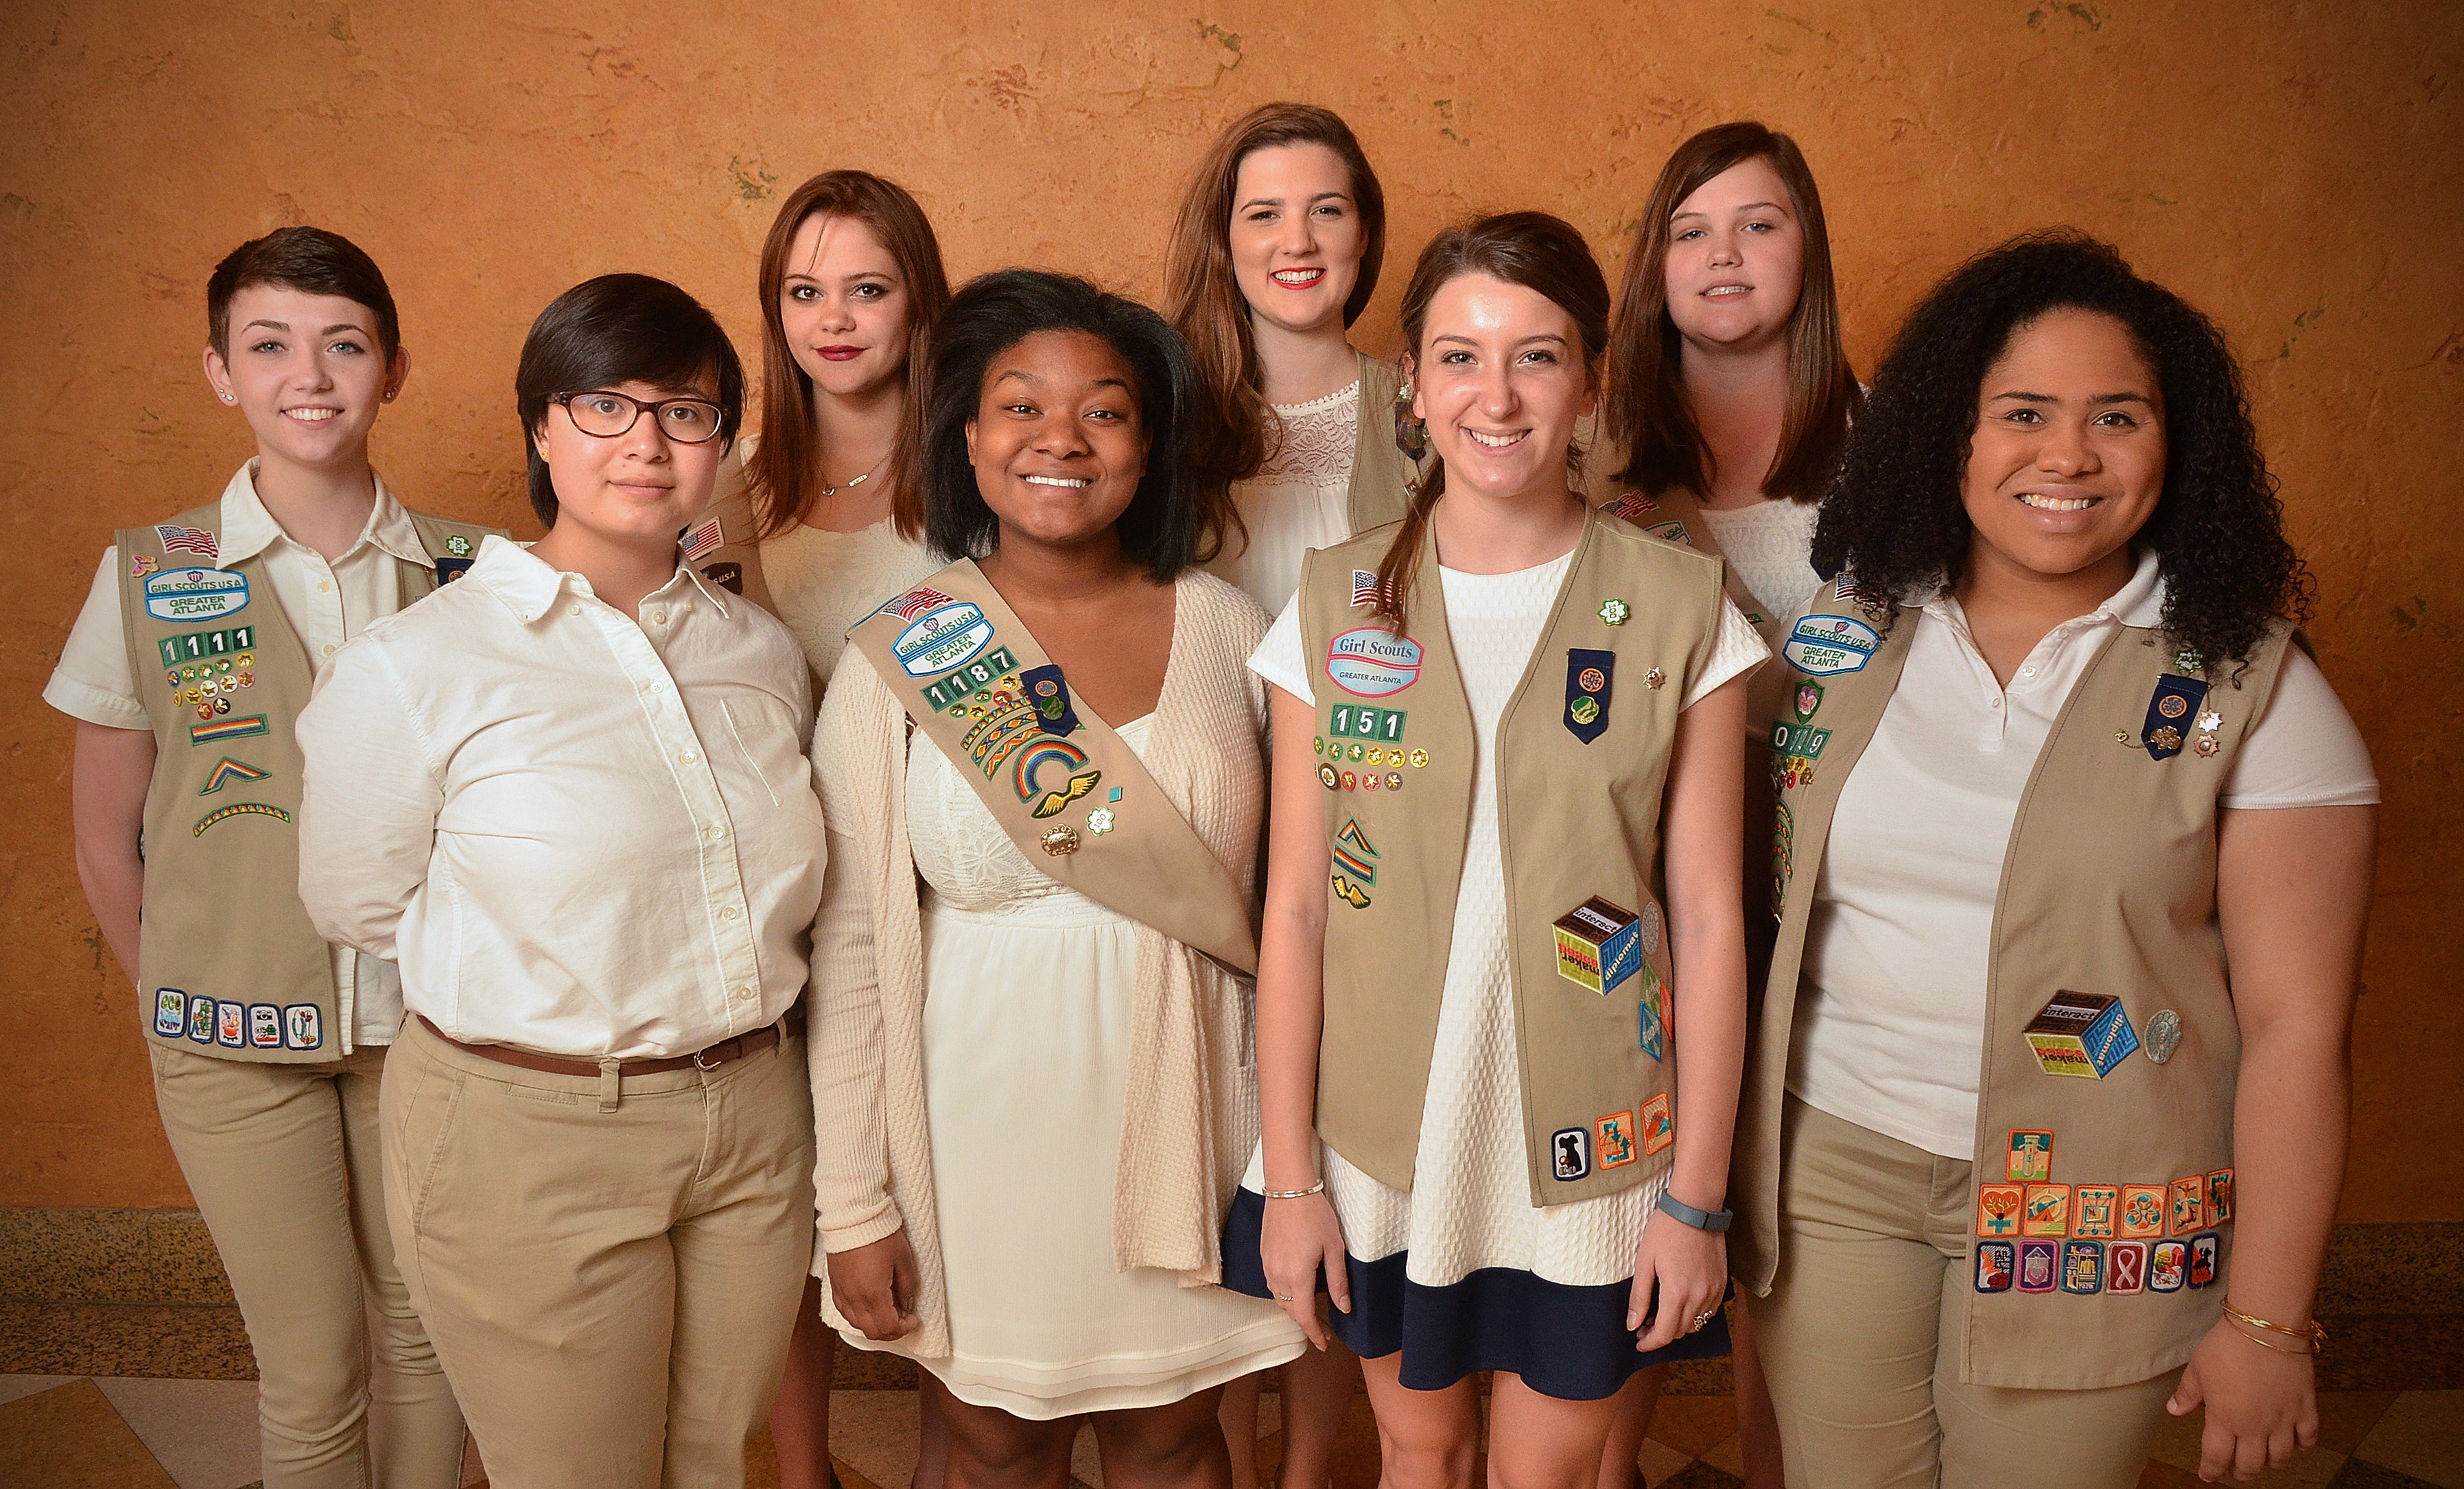 gwinnett forum focus gwinnett girl scouts to hold together gwinnett girl scouts who earned the 2016 gold award are from left to right